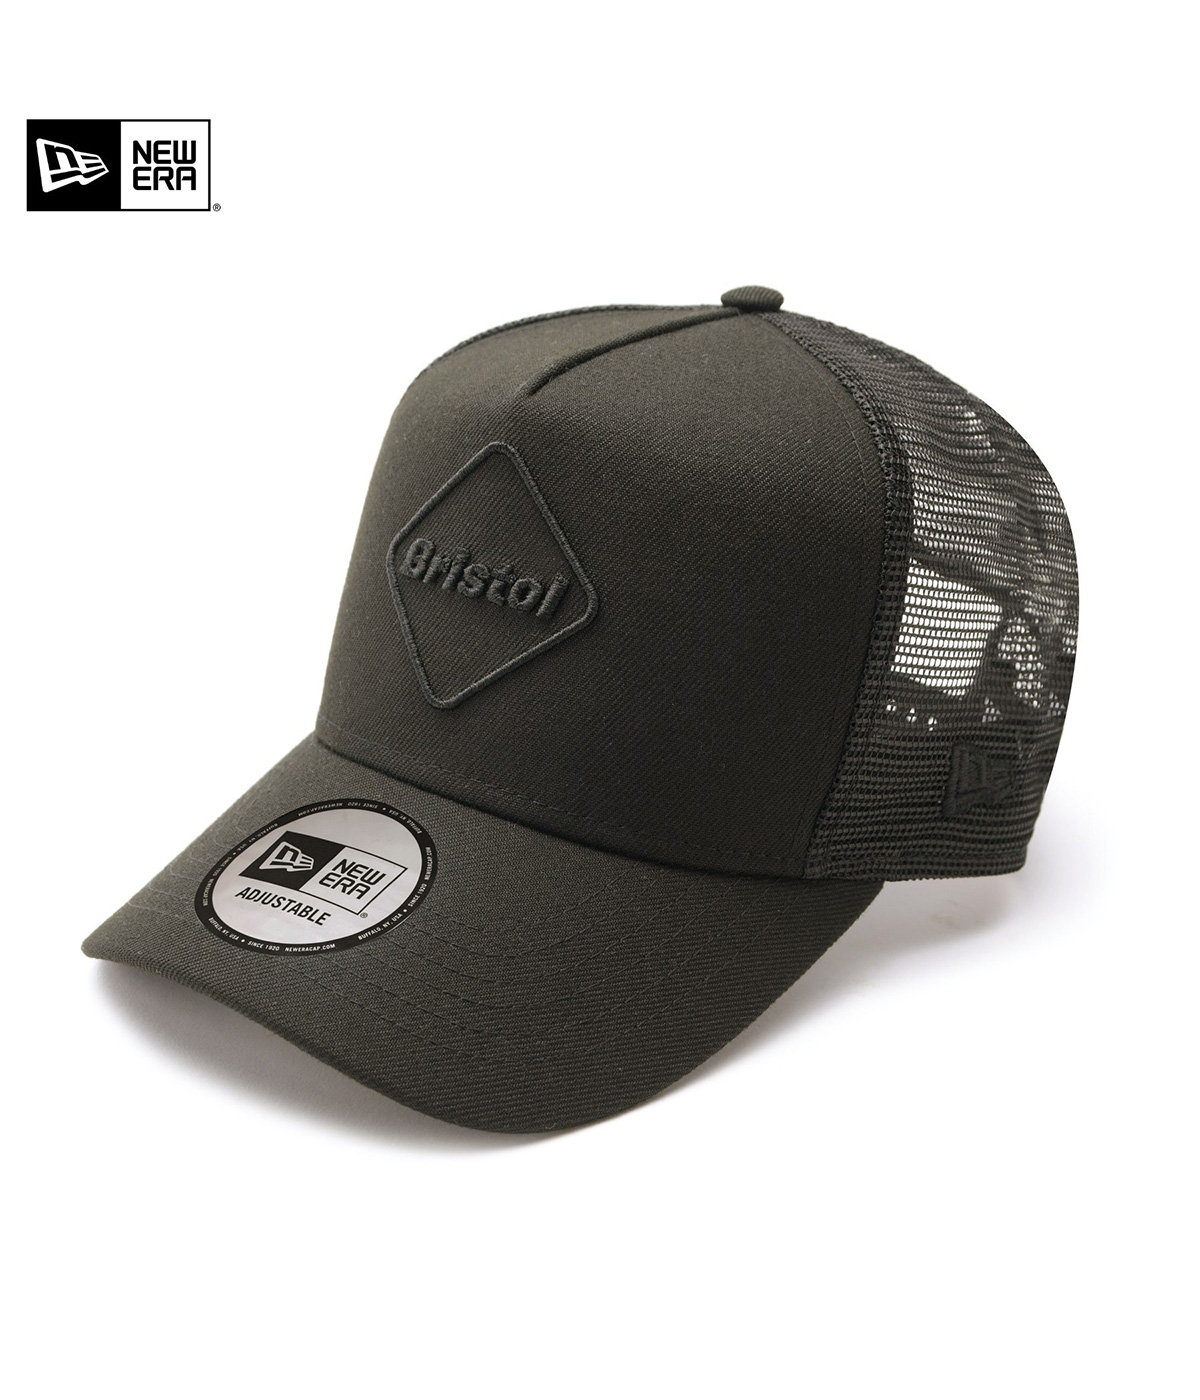 NEW ERA EMBLEM MESH CAP*